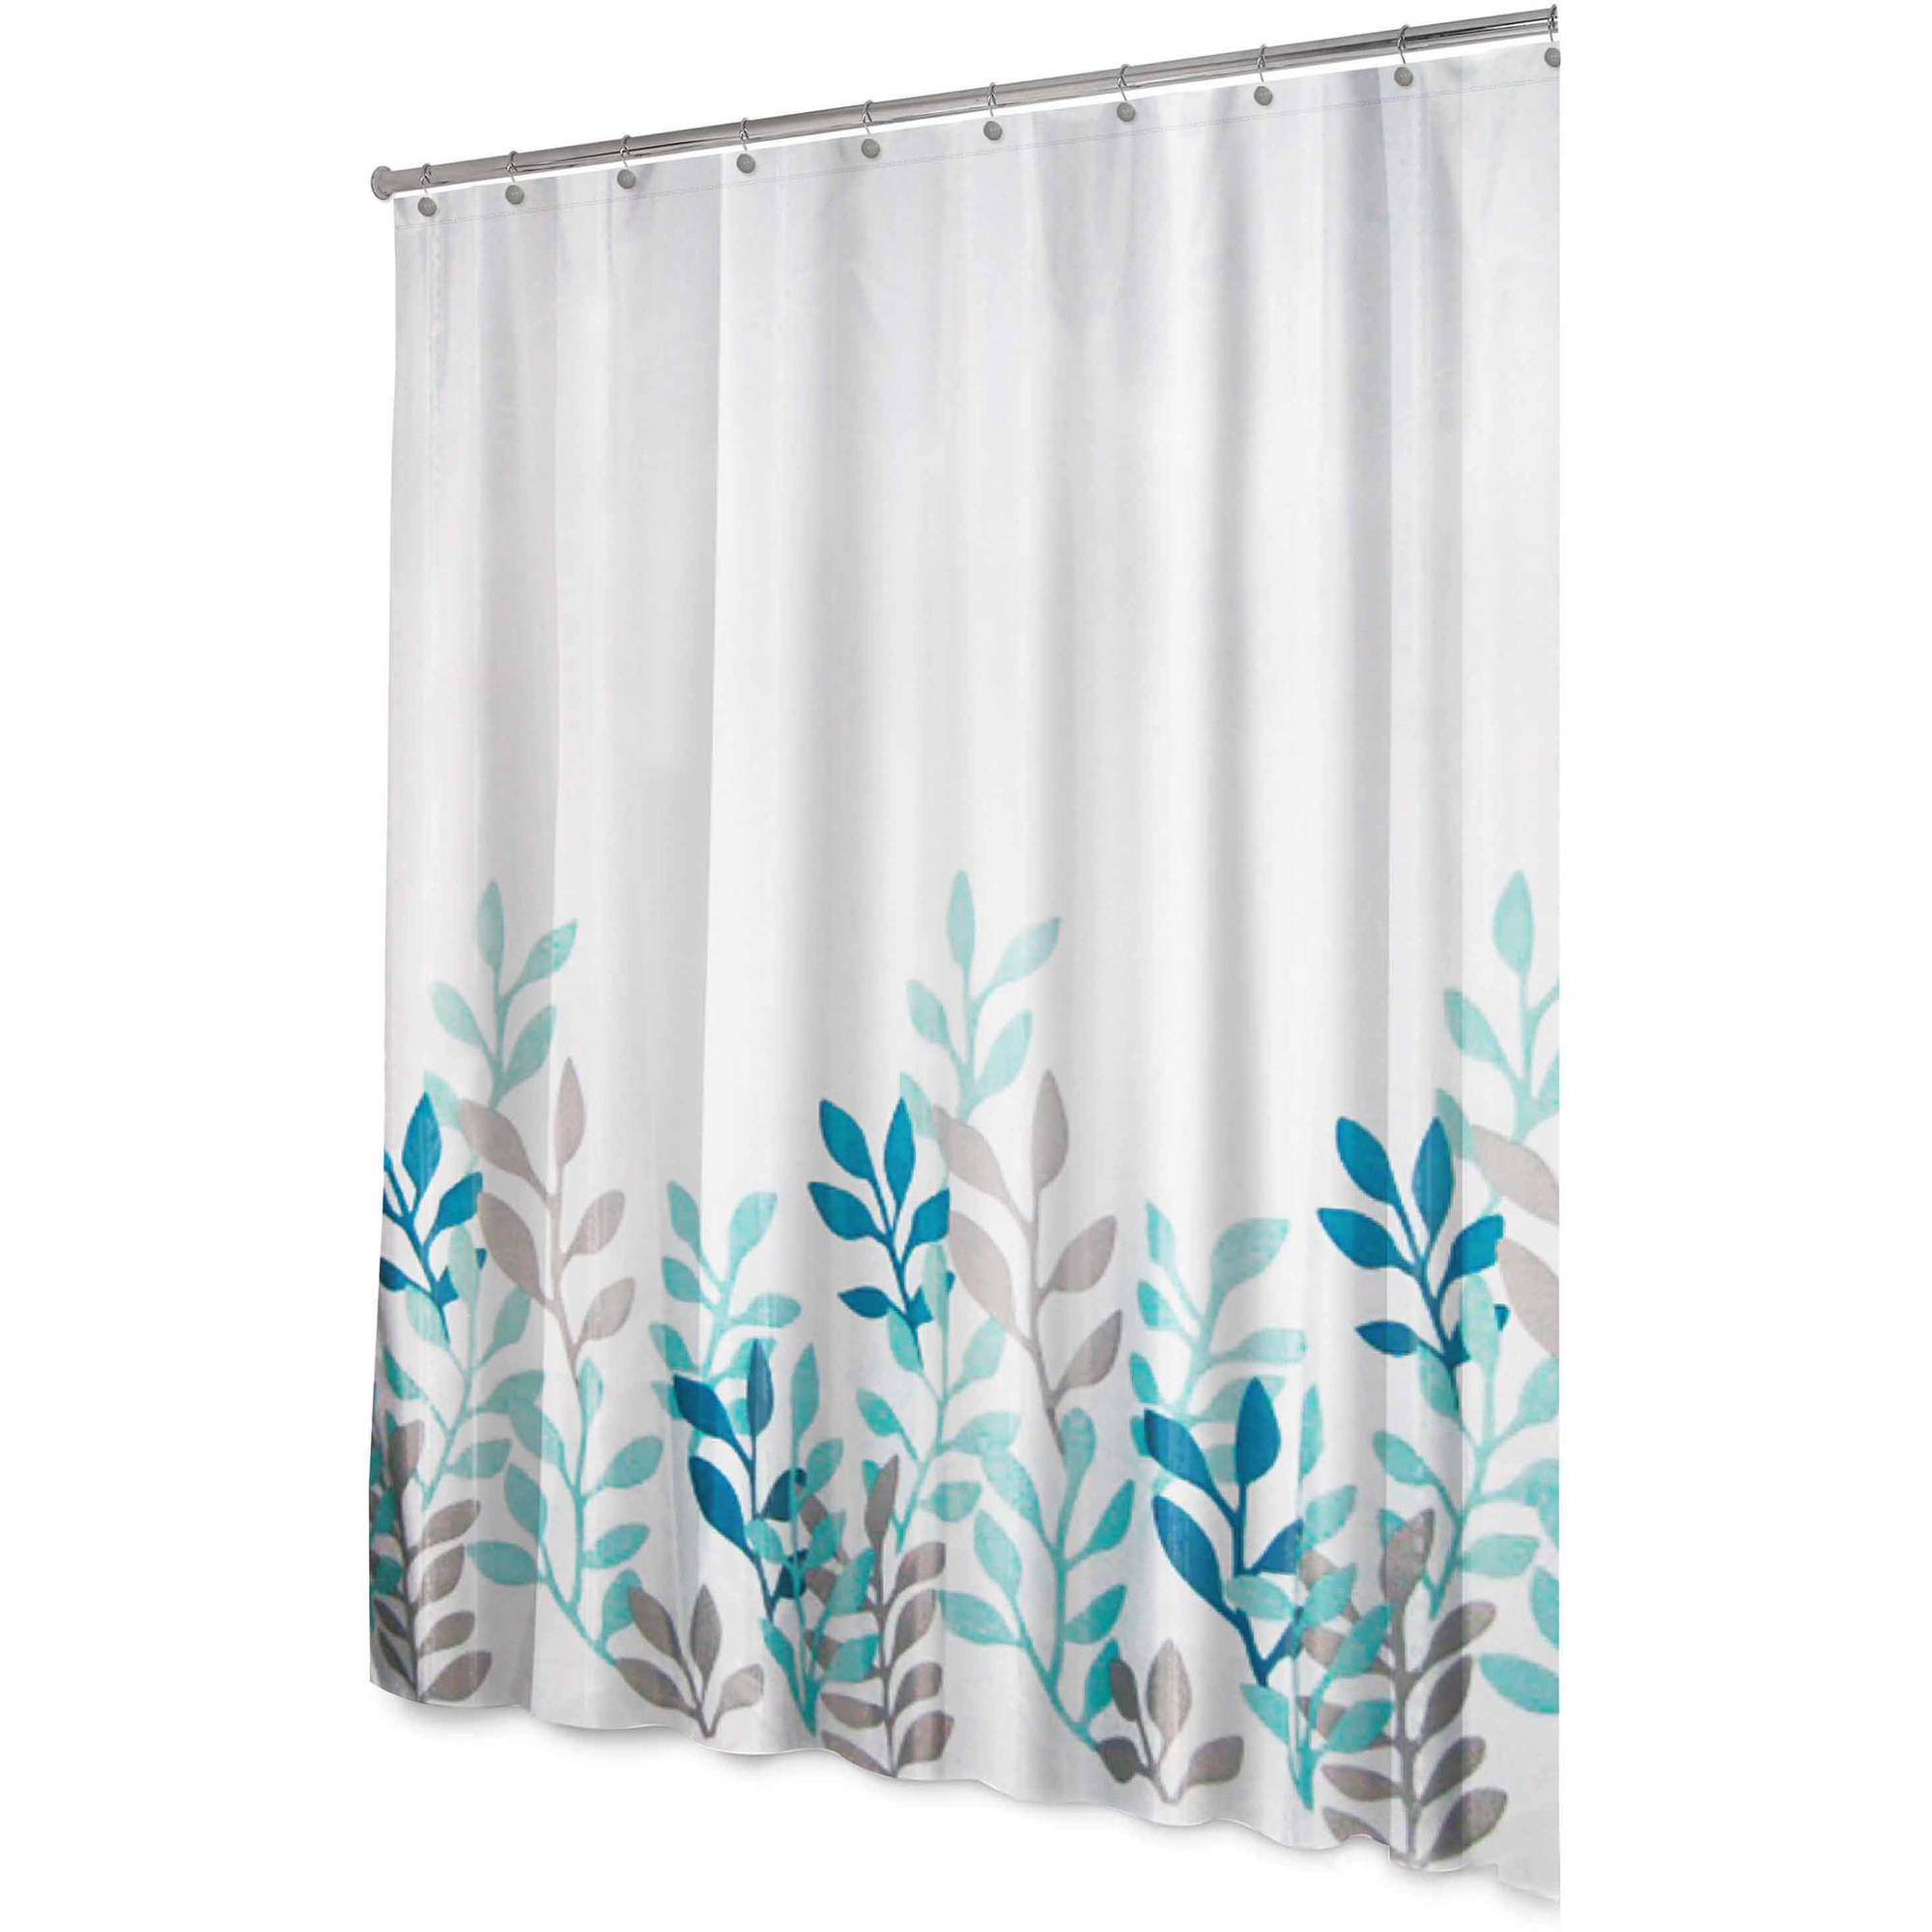 Splash Home Polyester Fabric Shower Curtain